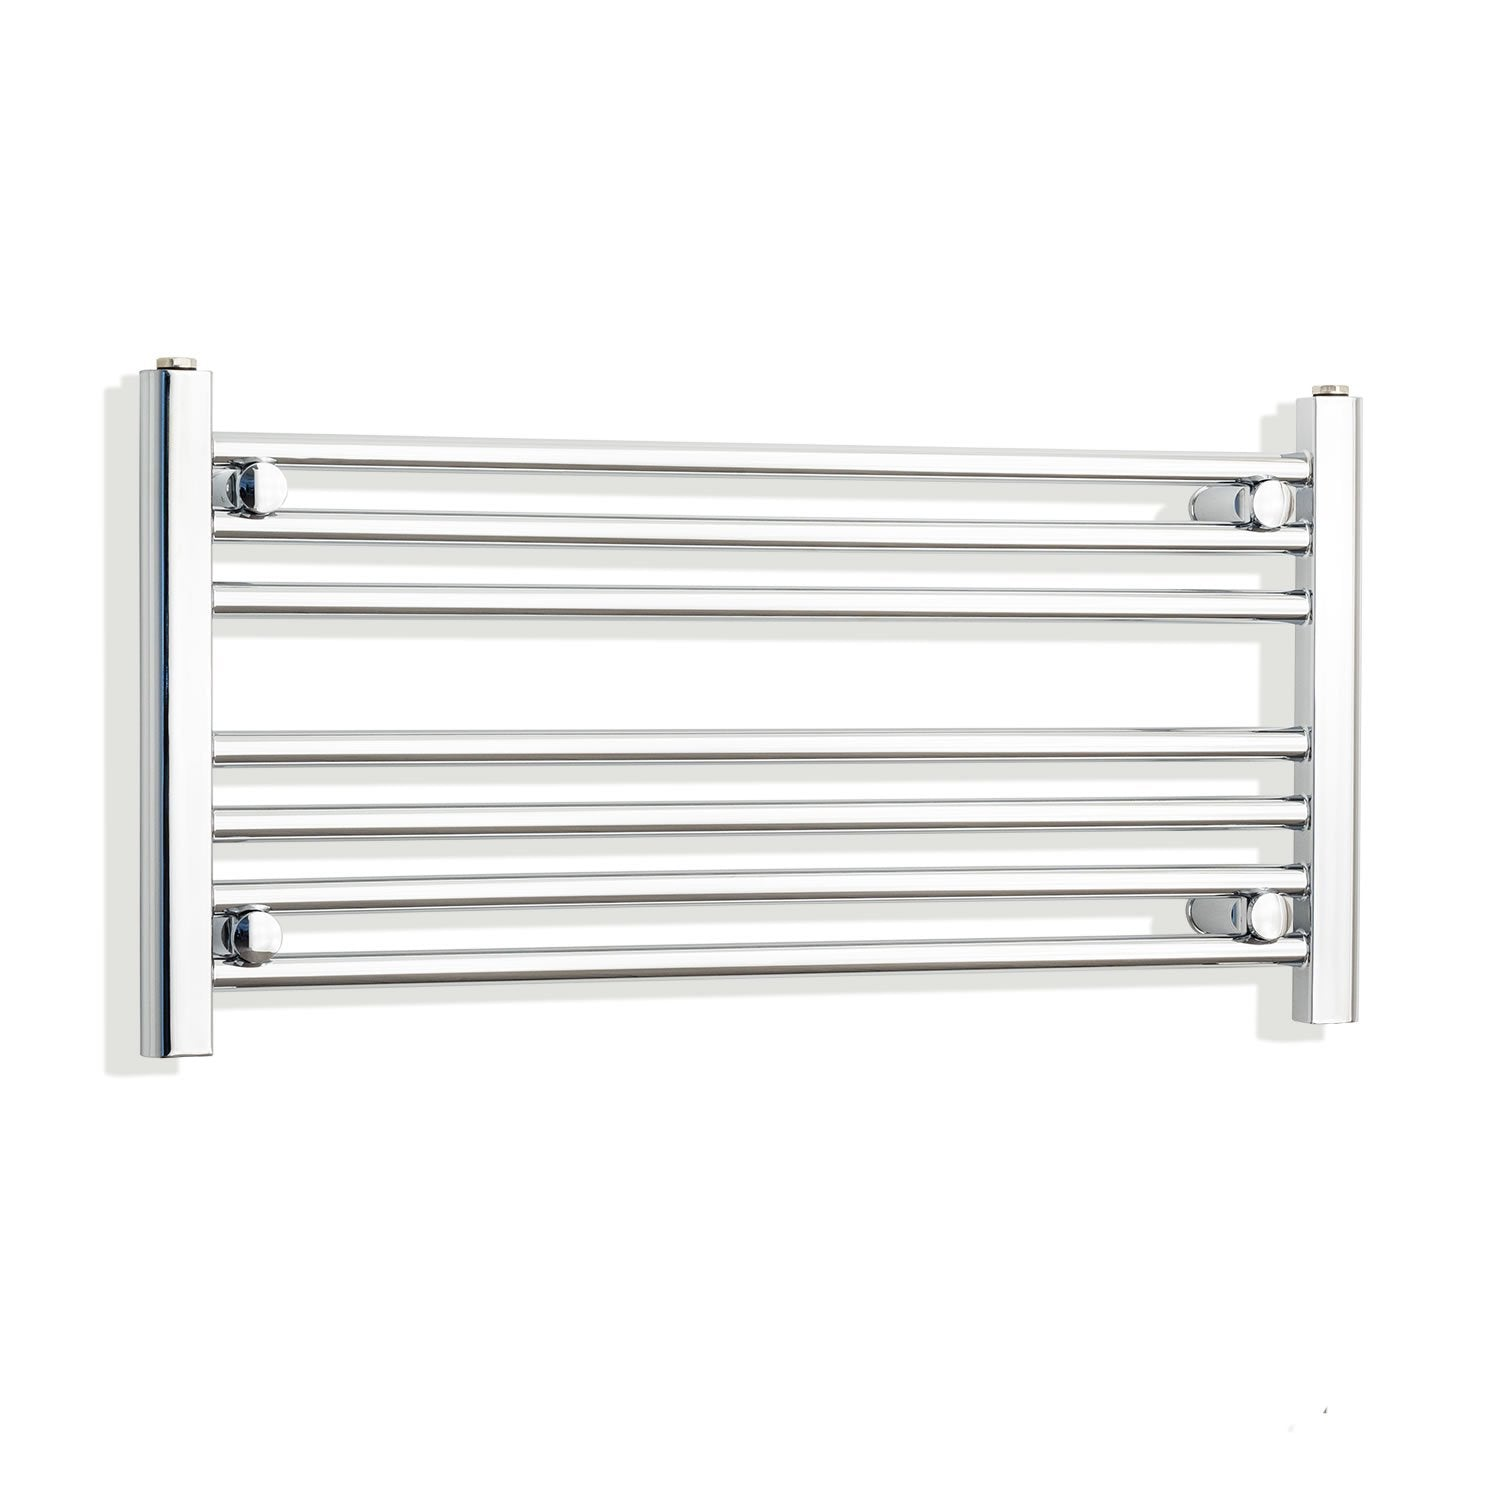 750mm Wide 400mm High Flat Chrome Heated Towel Rail Radiator HTR,Towel Rail Only